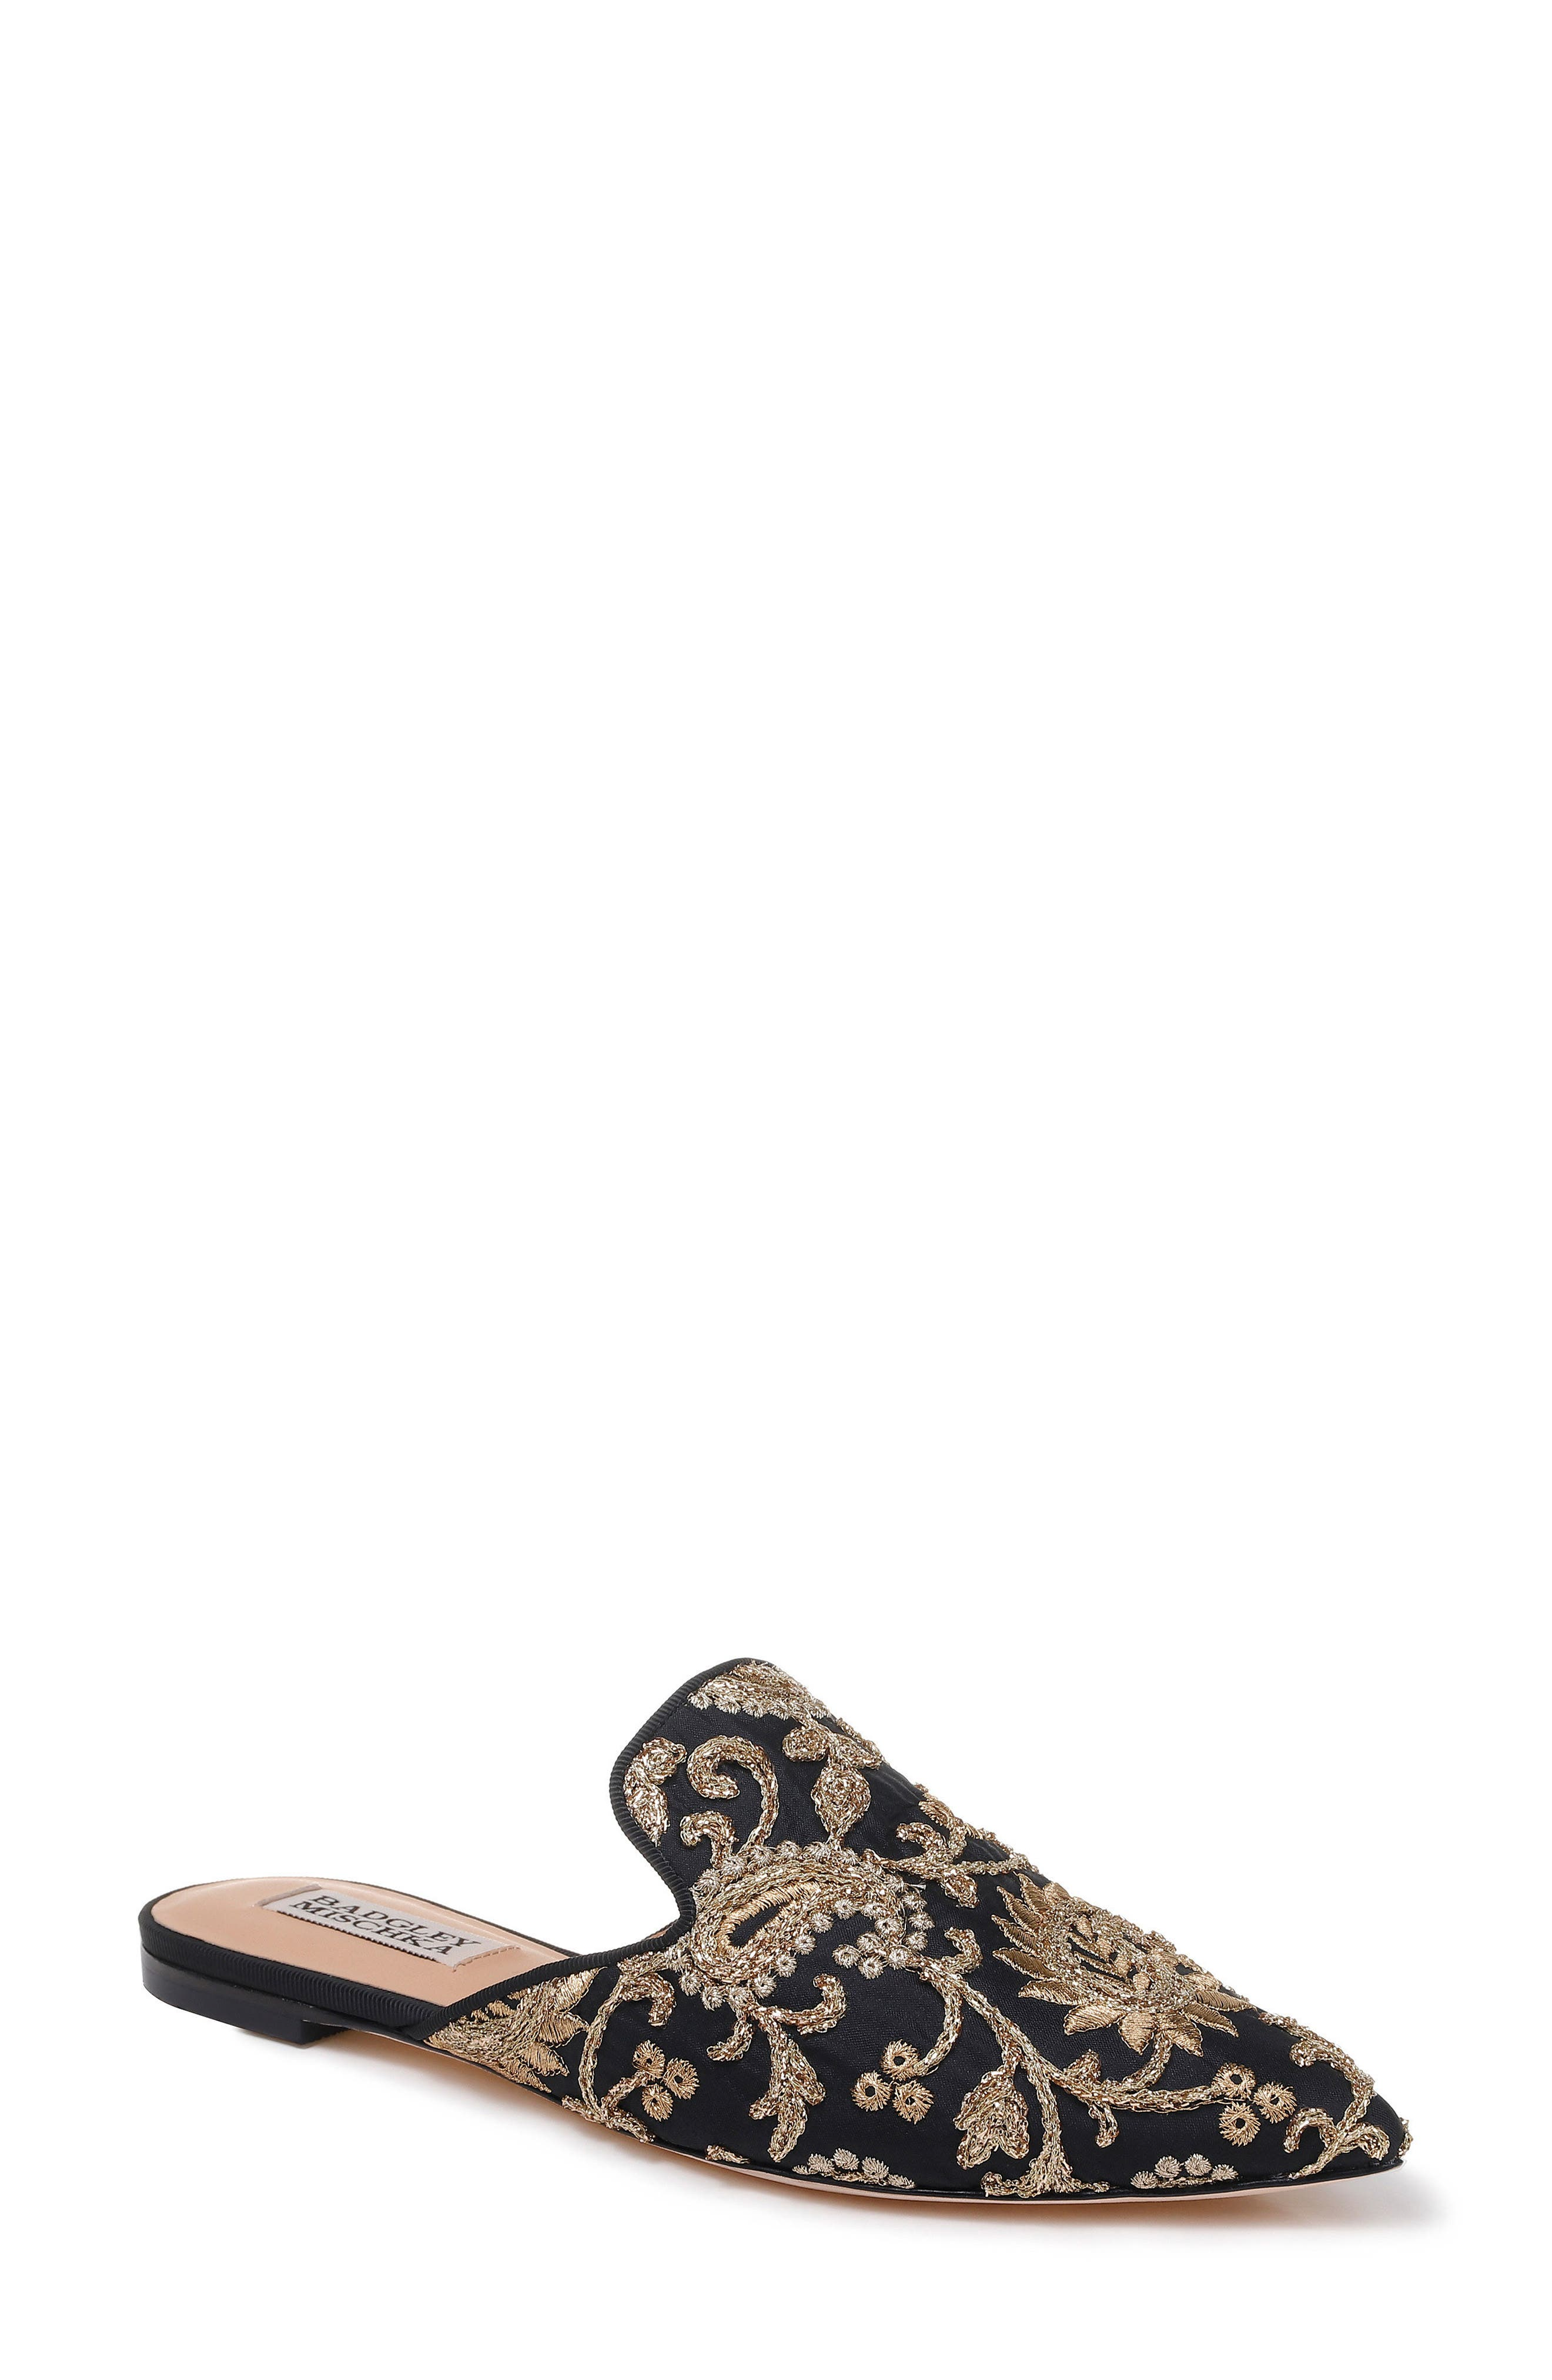 Phoebe Embroidered Mule,                         Main,                         color, BLACK FABRIC